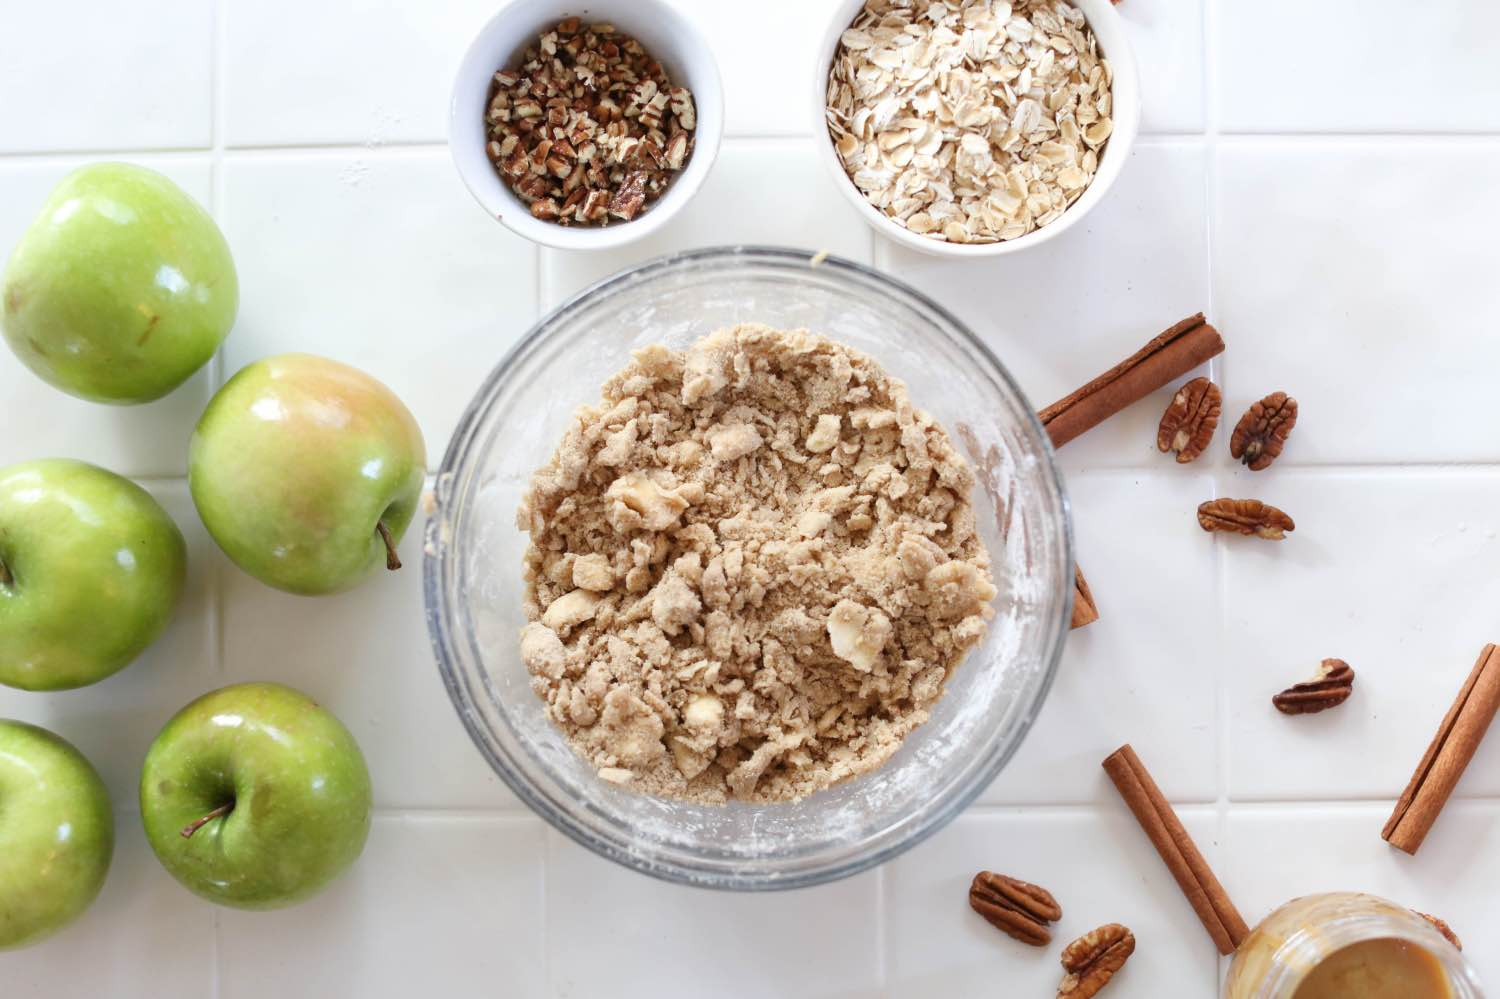 caramel apple crisp recipe butter added to topping